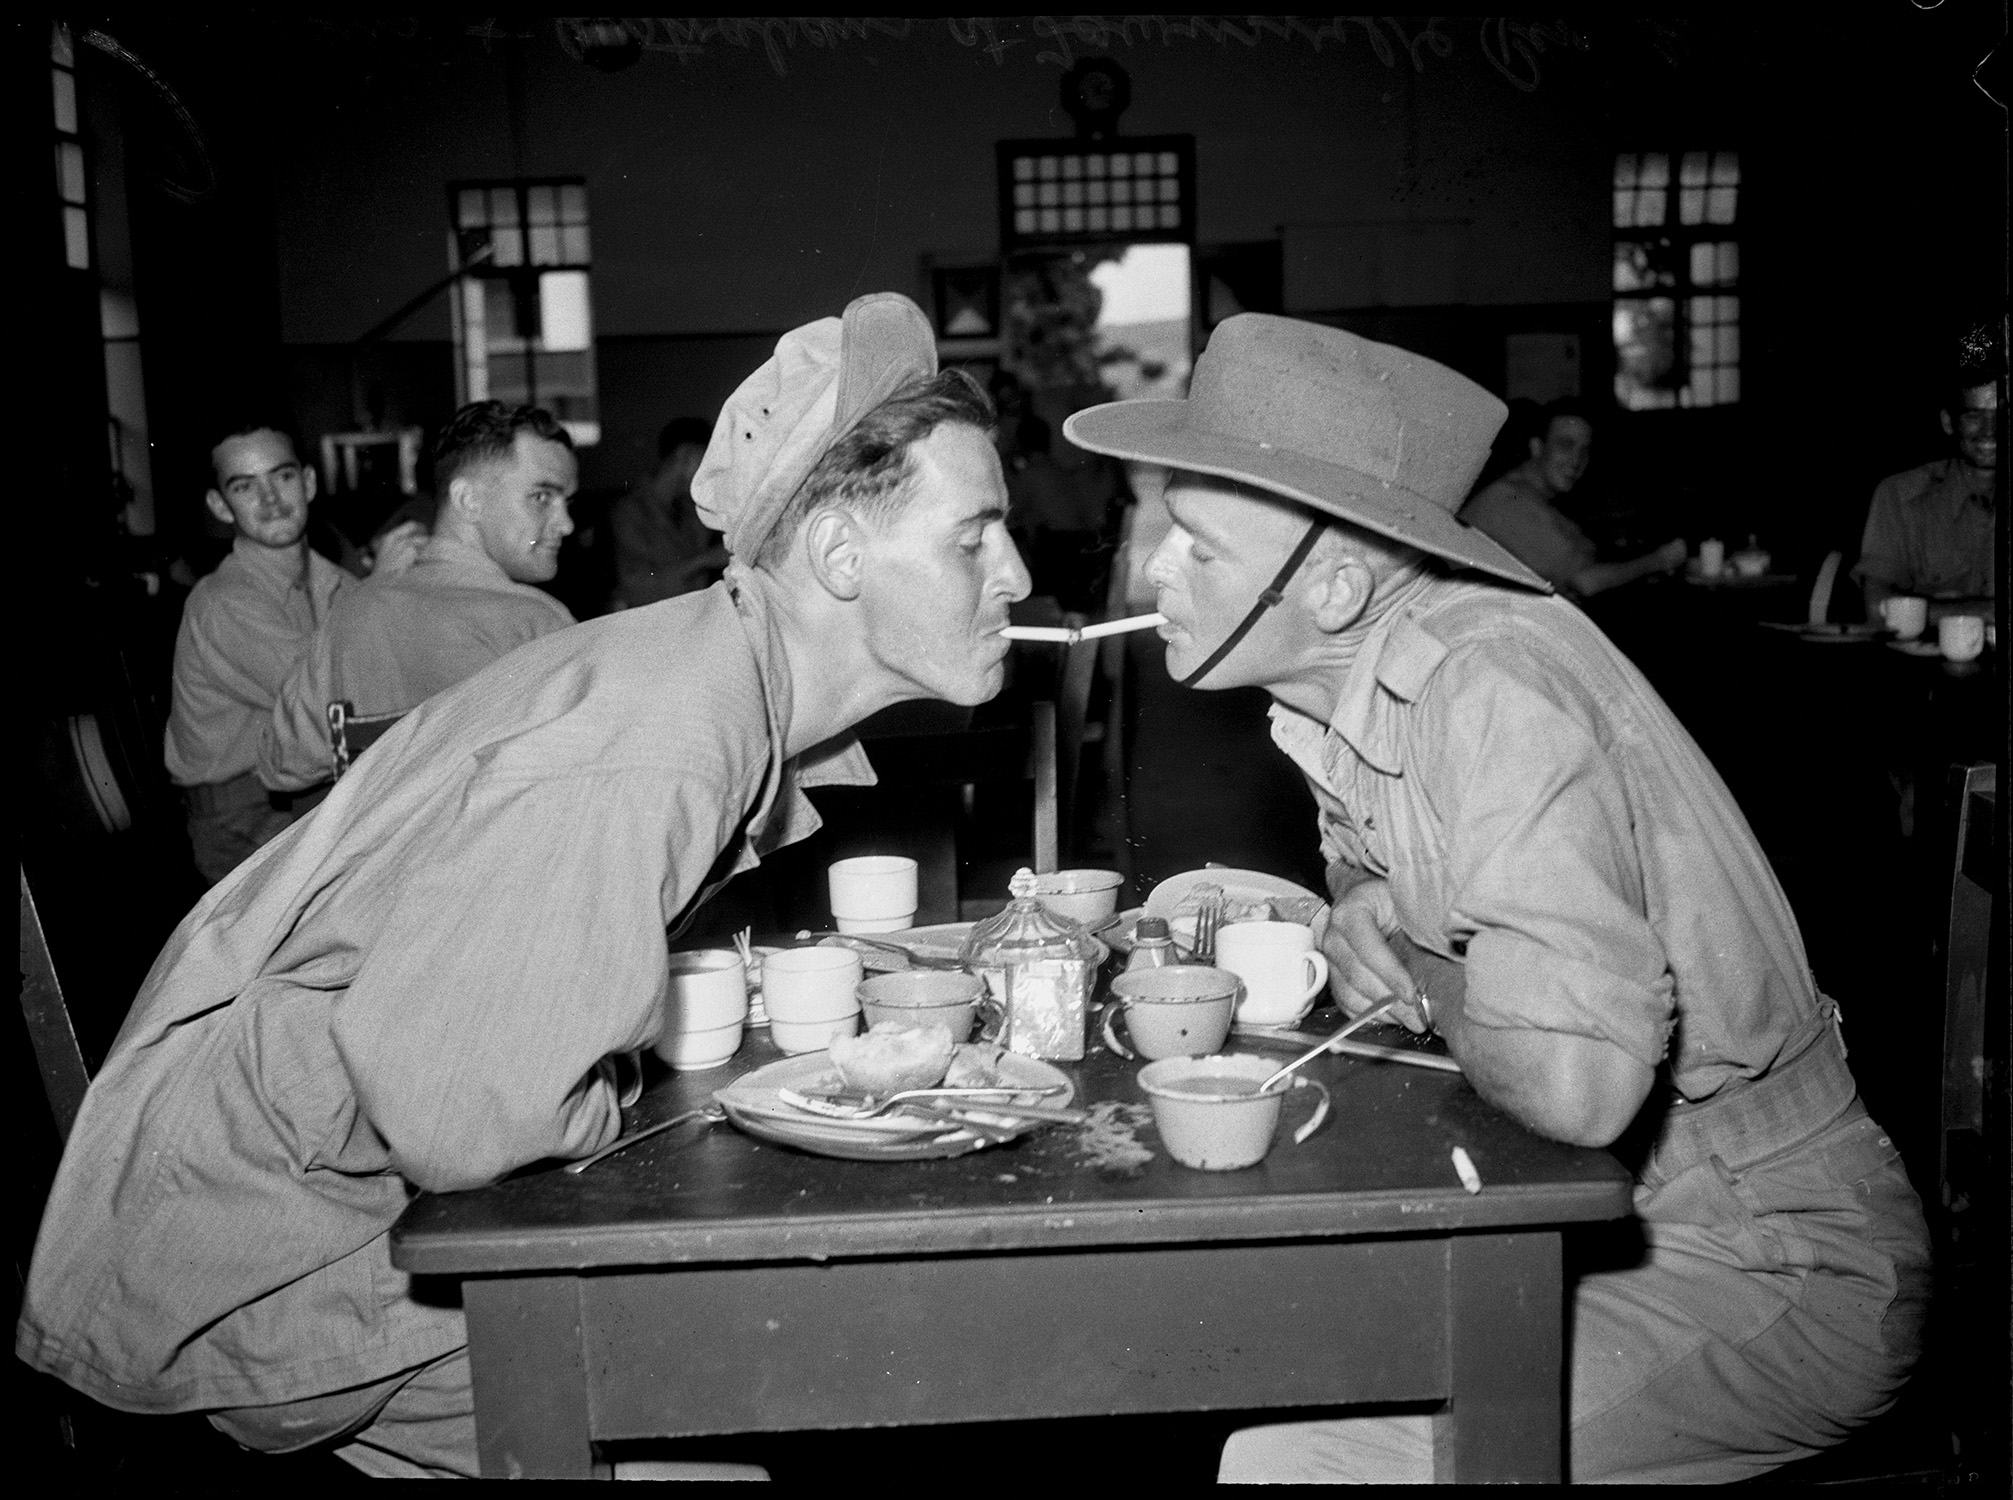 American and Australian soldiers at Townsville, 21 February 1944, photographed by N. Herfort